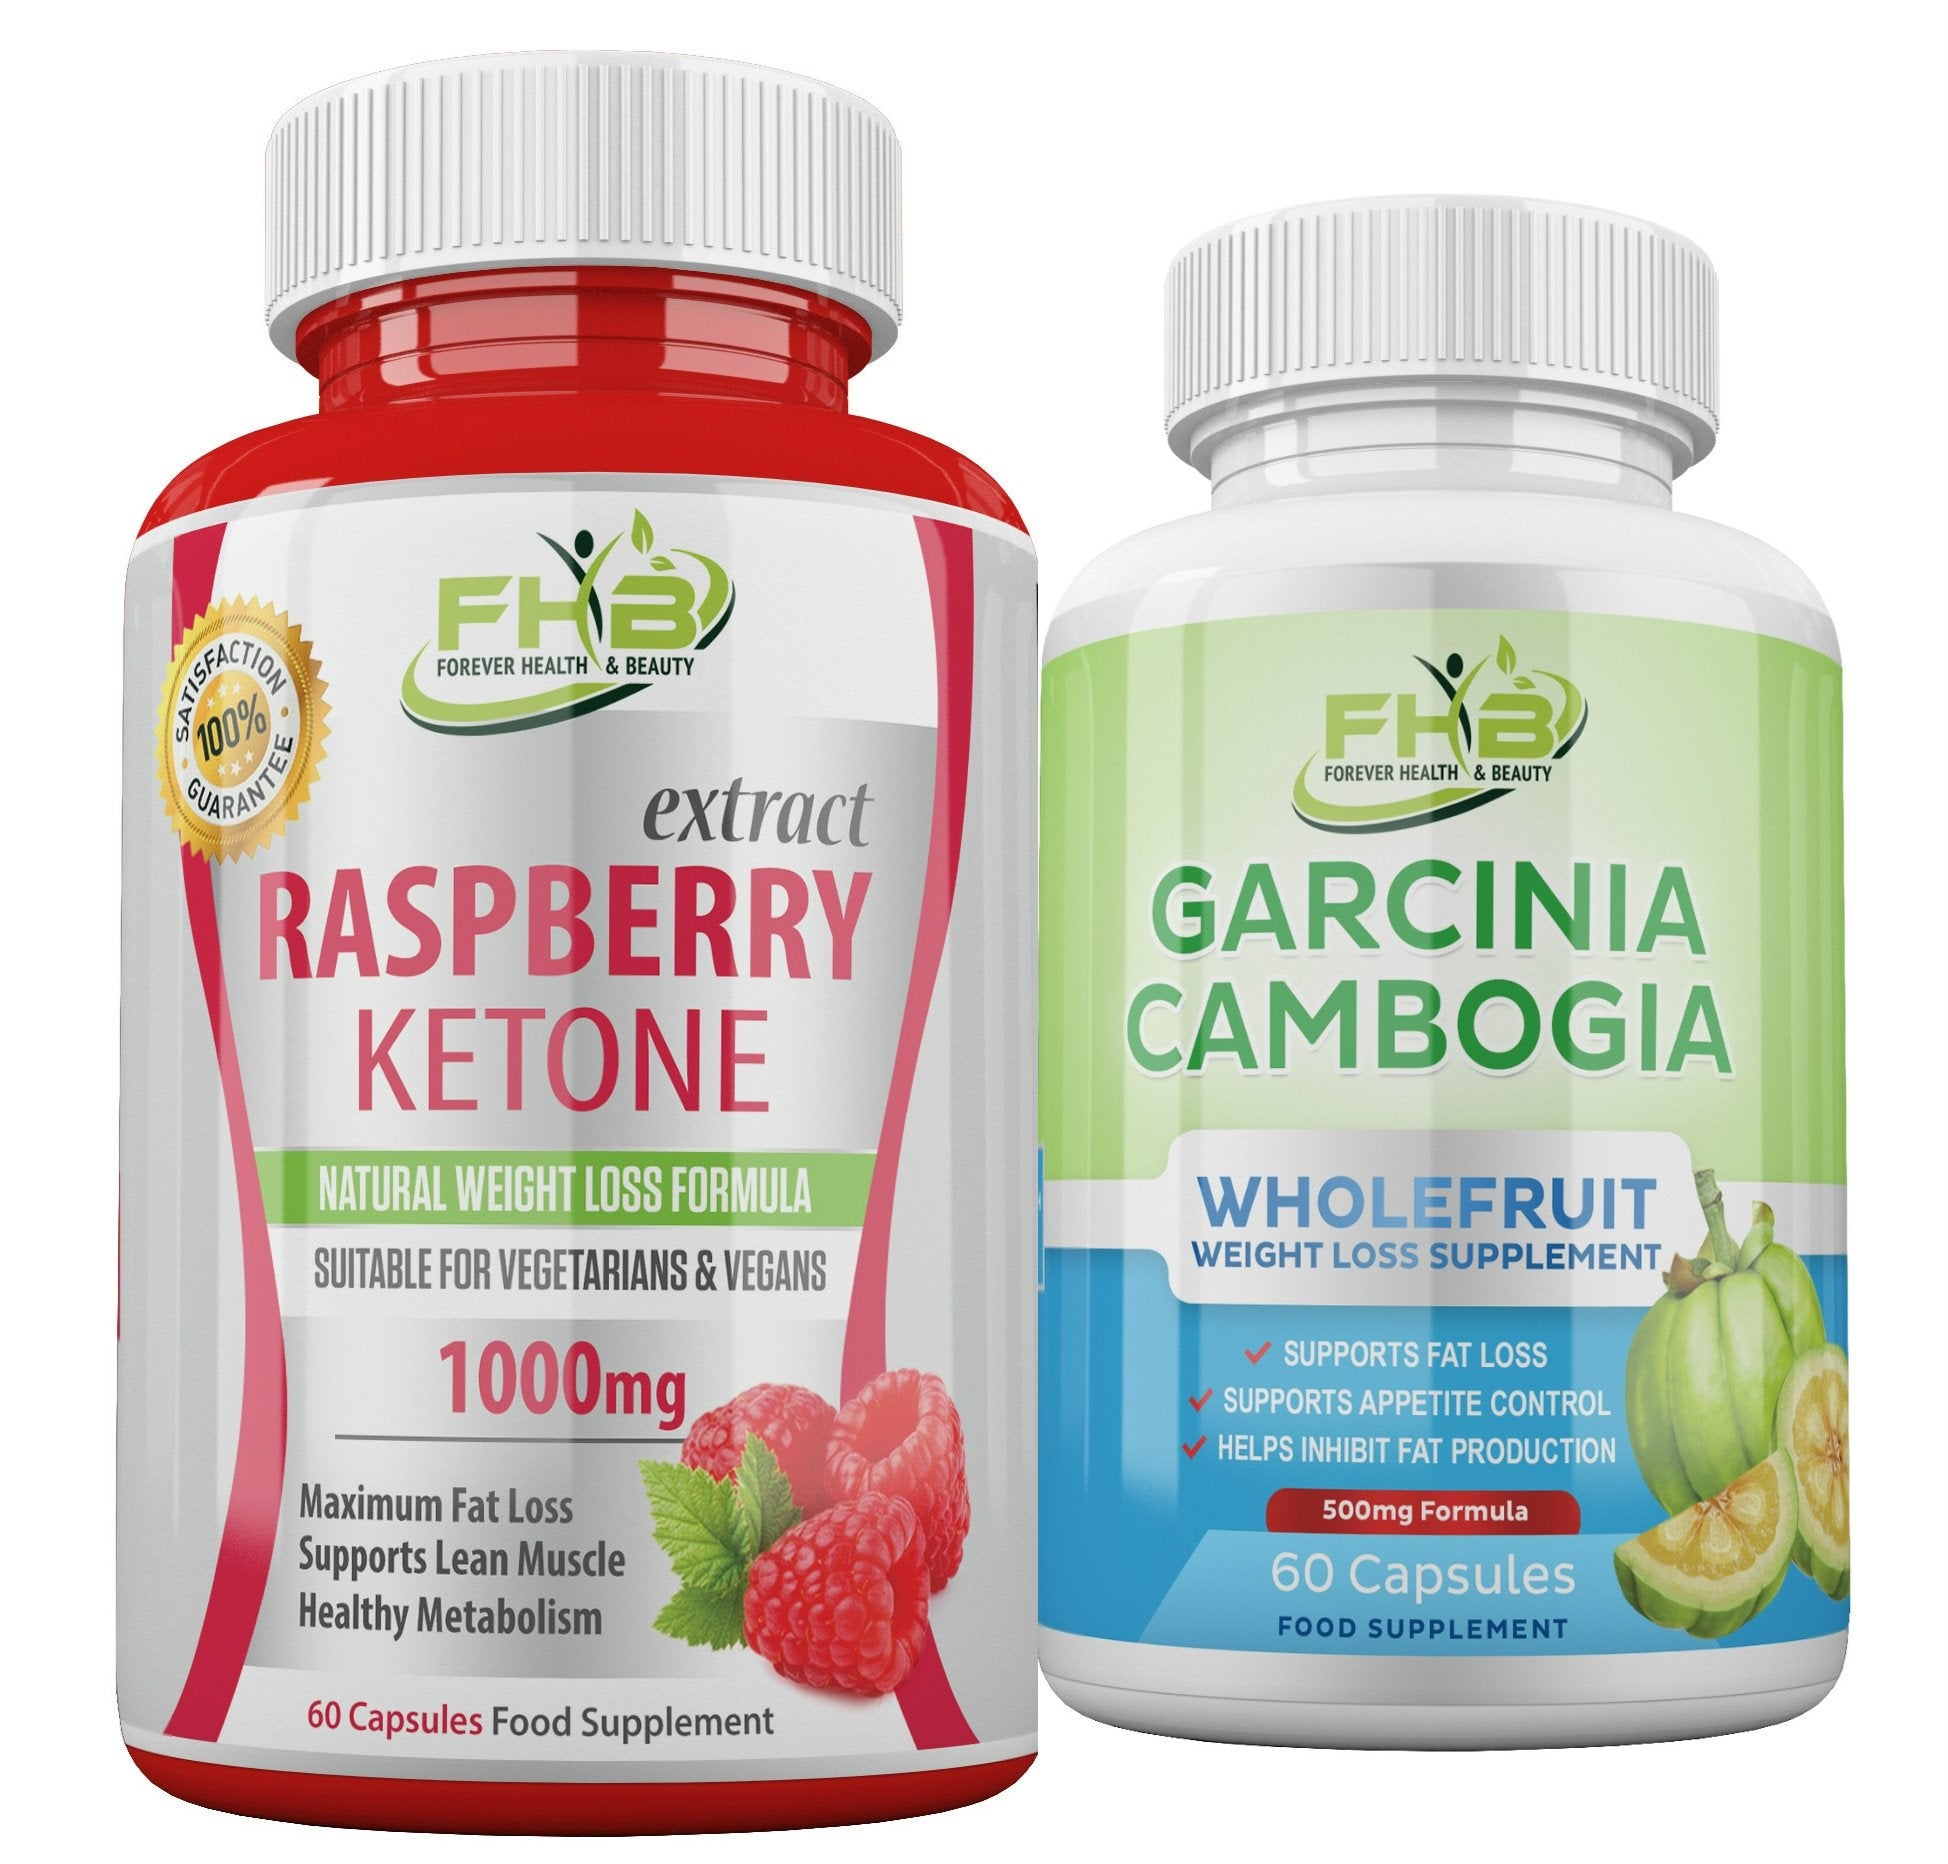 Carcinia Cambogia & Raspberry Ketone Weight Loss Supplements Combo - 120 Capsules